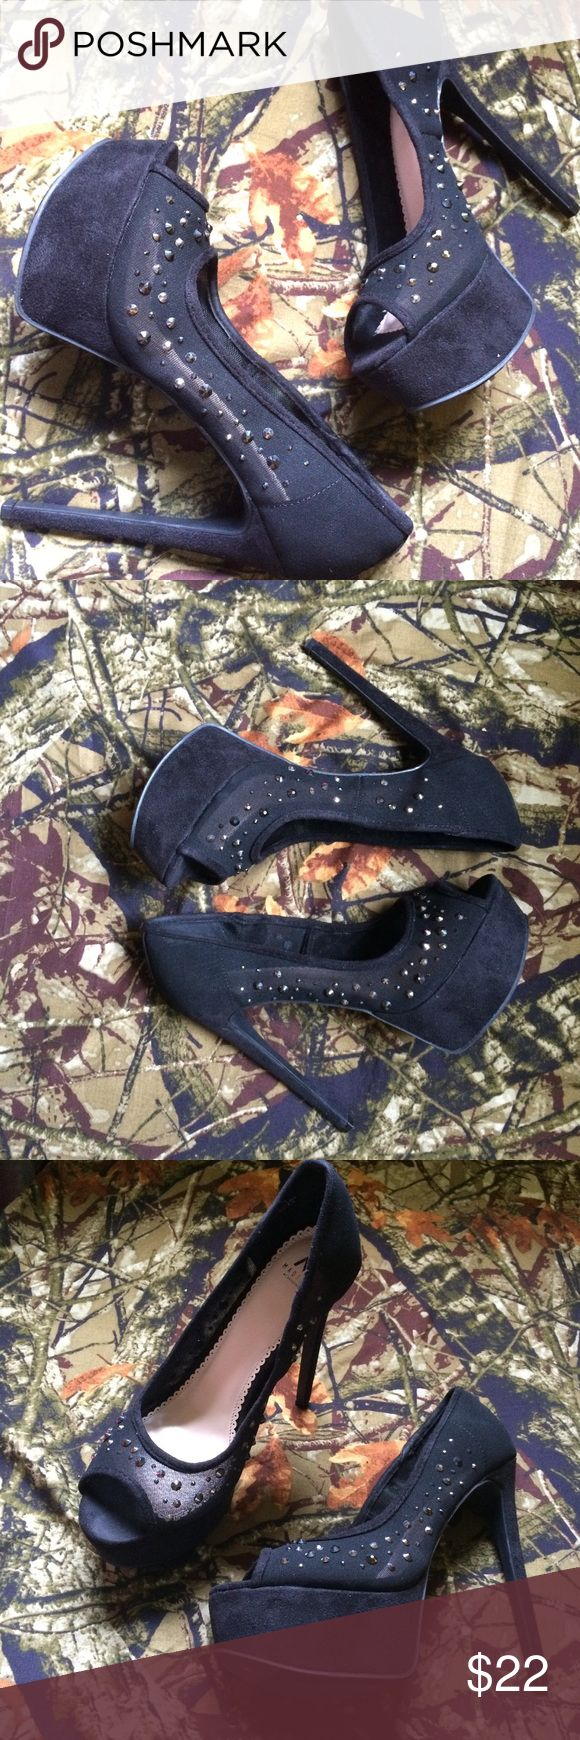 Shoe dazzle heels Worn only once, size 8, cute heels and comfortable, with a suede material.💙 Shoe Dazzle Shoes Heels